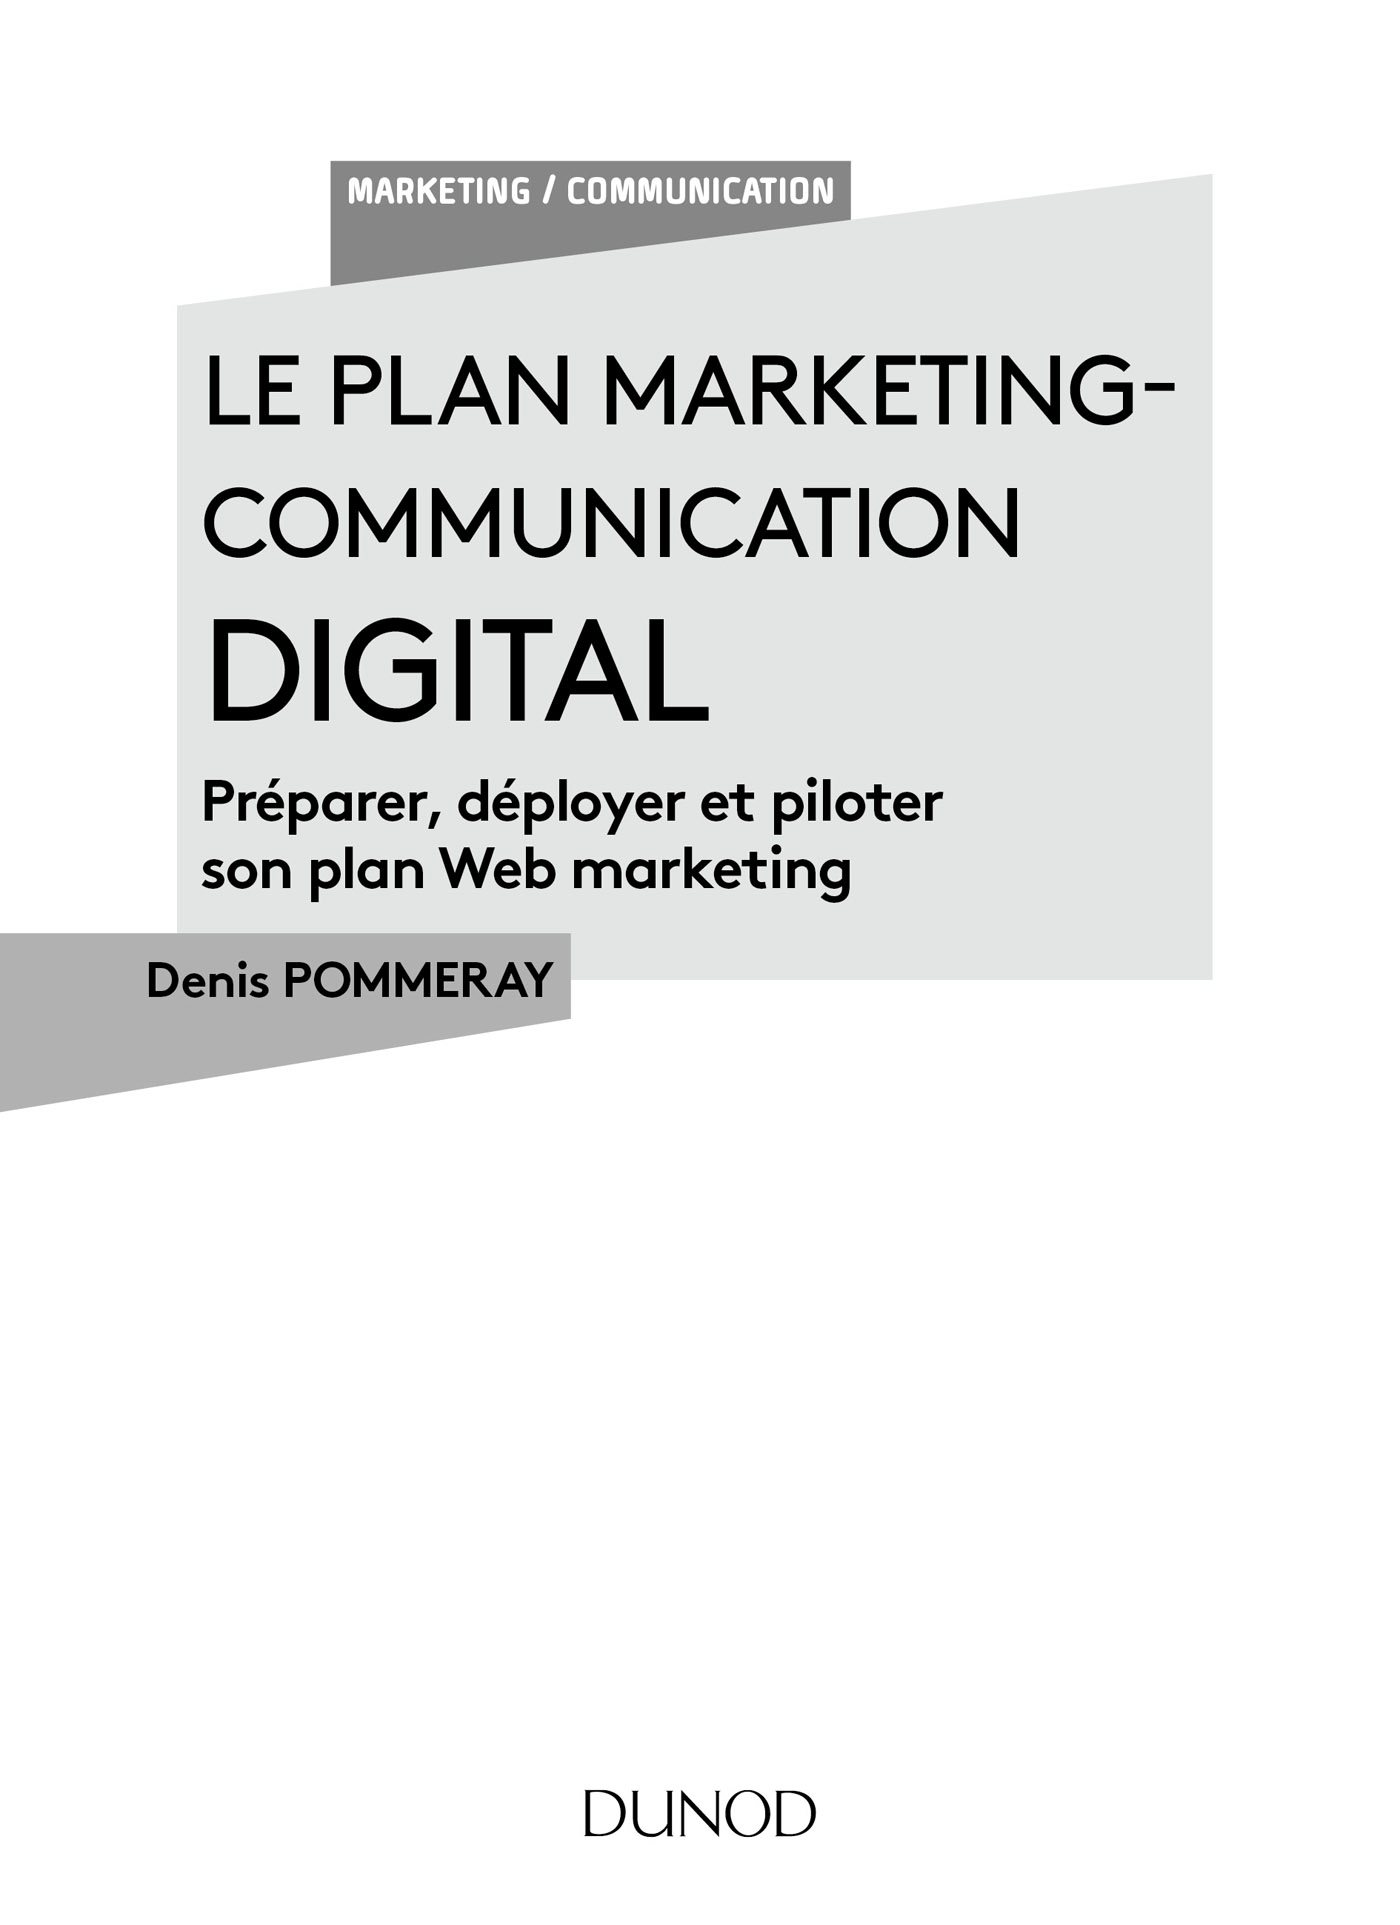 Page de titre : Denis Pommeray, Le plan marketing-communication digital, Dunod